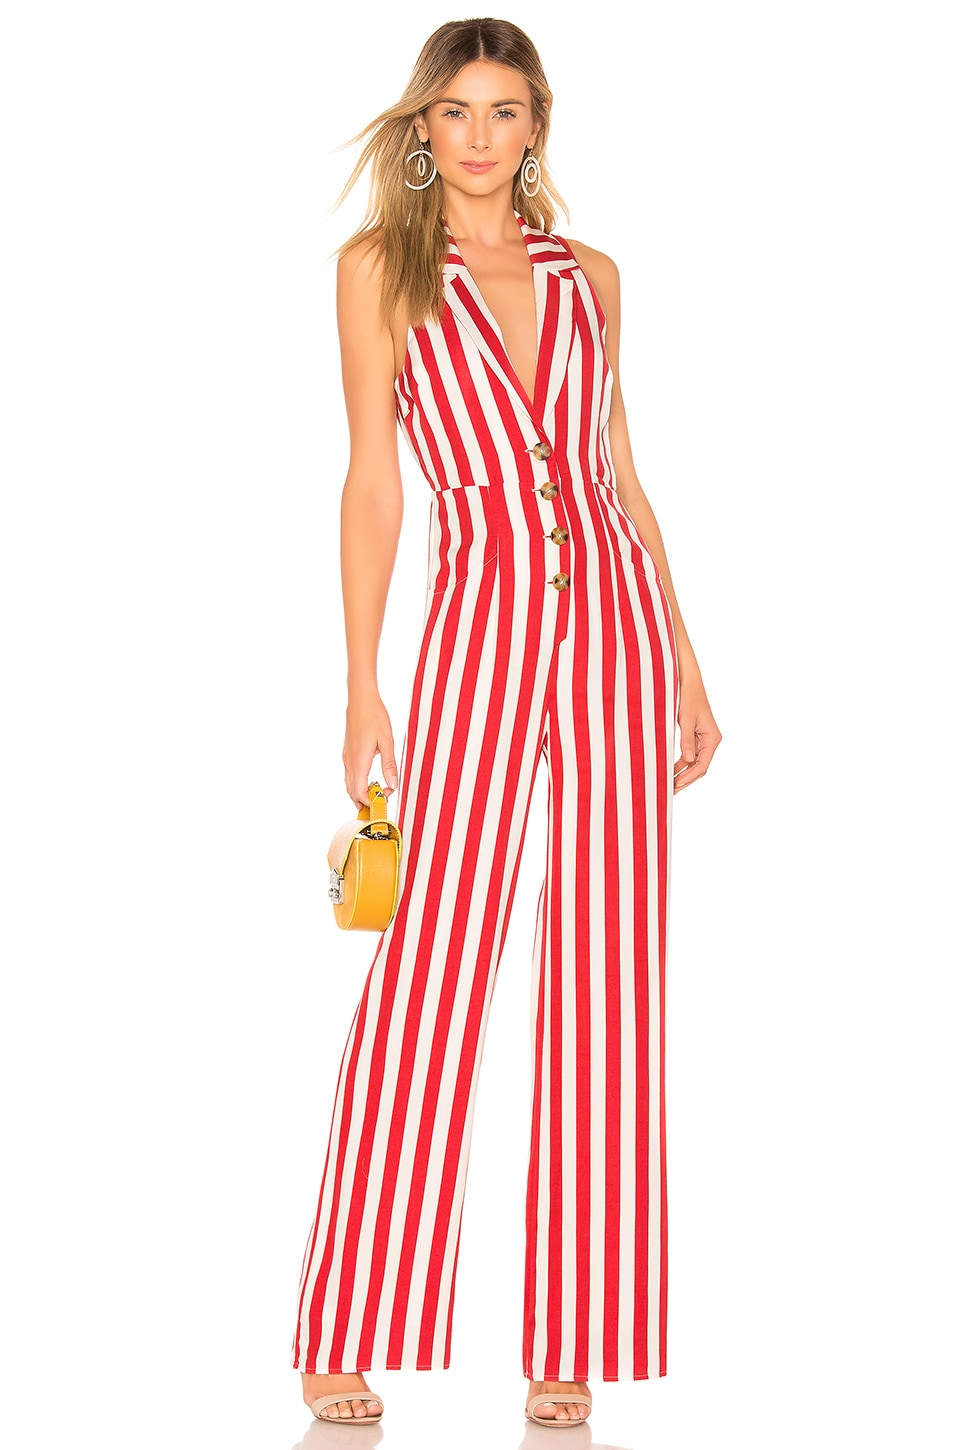 House of Harlow 1960 X REVOLVE Marjorie Jumpsuit in Red & White Stripe